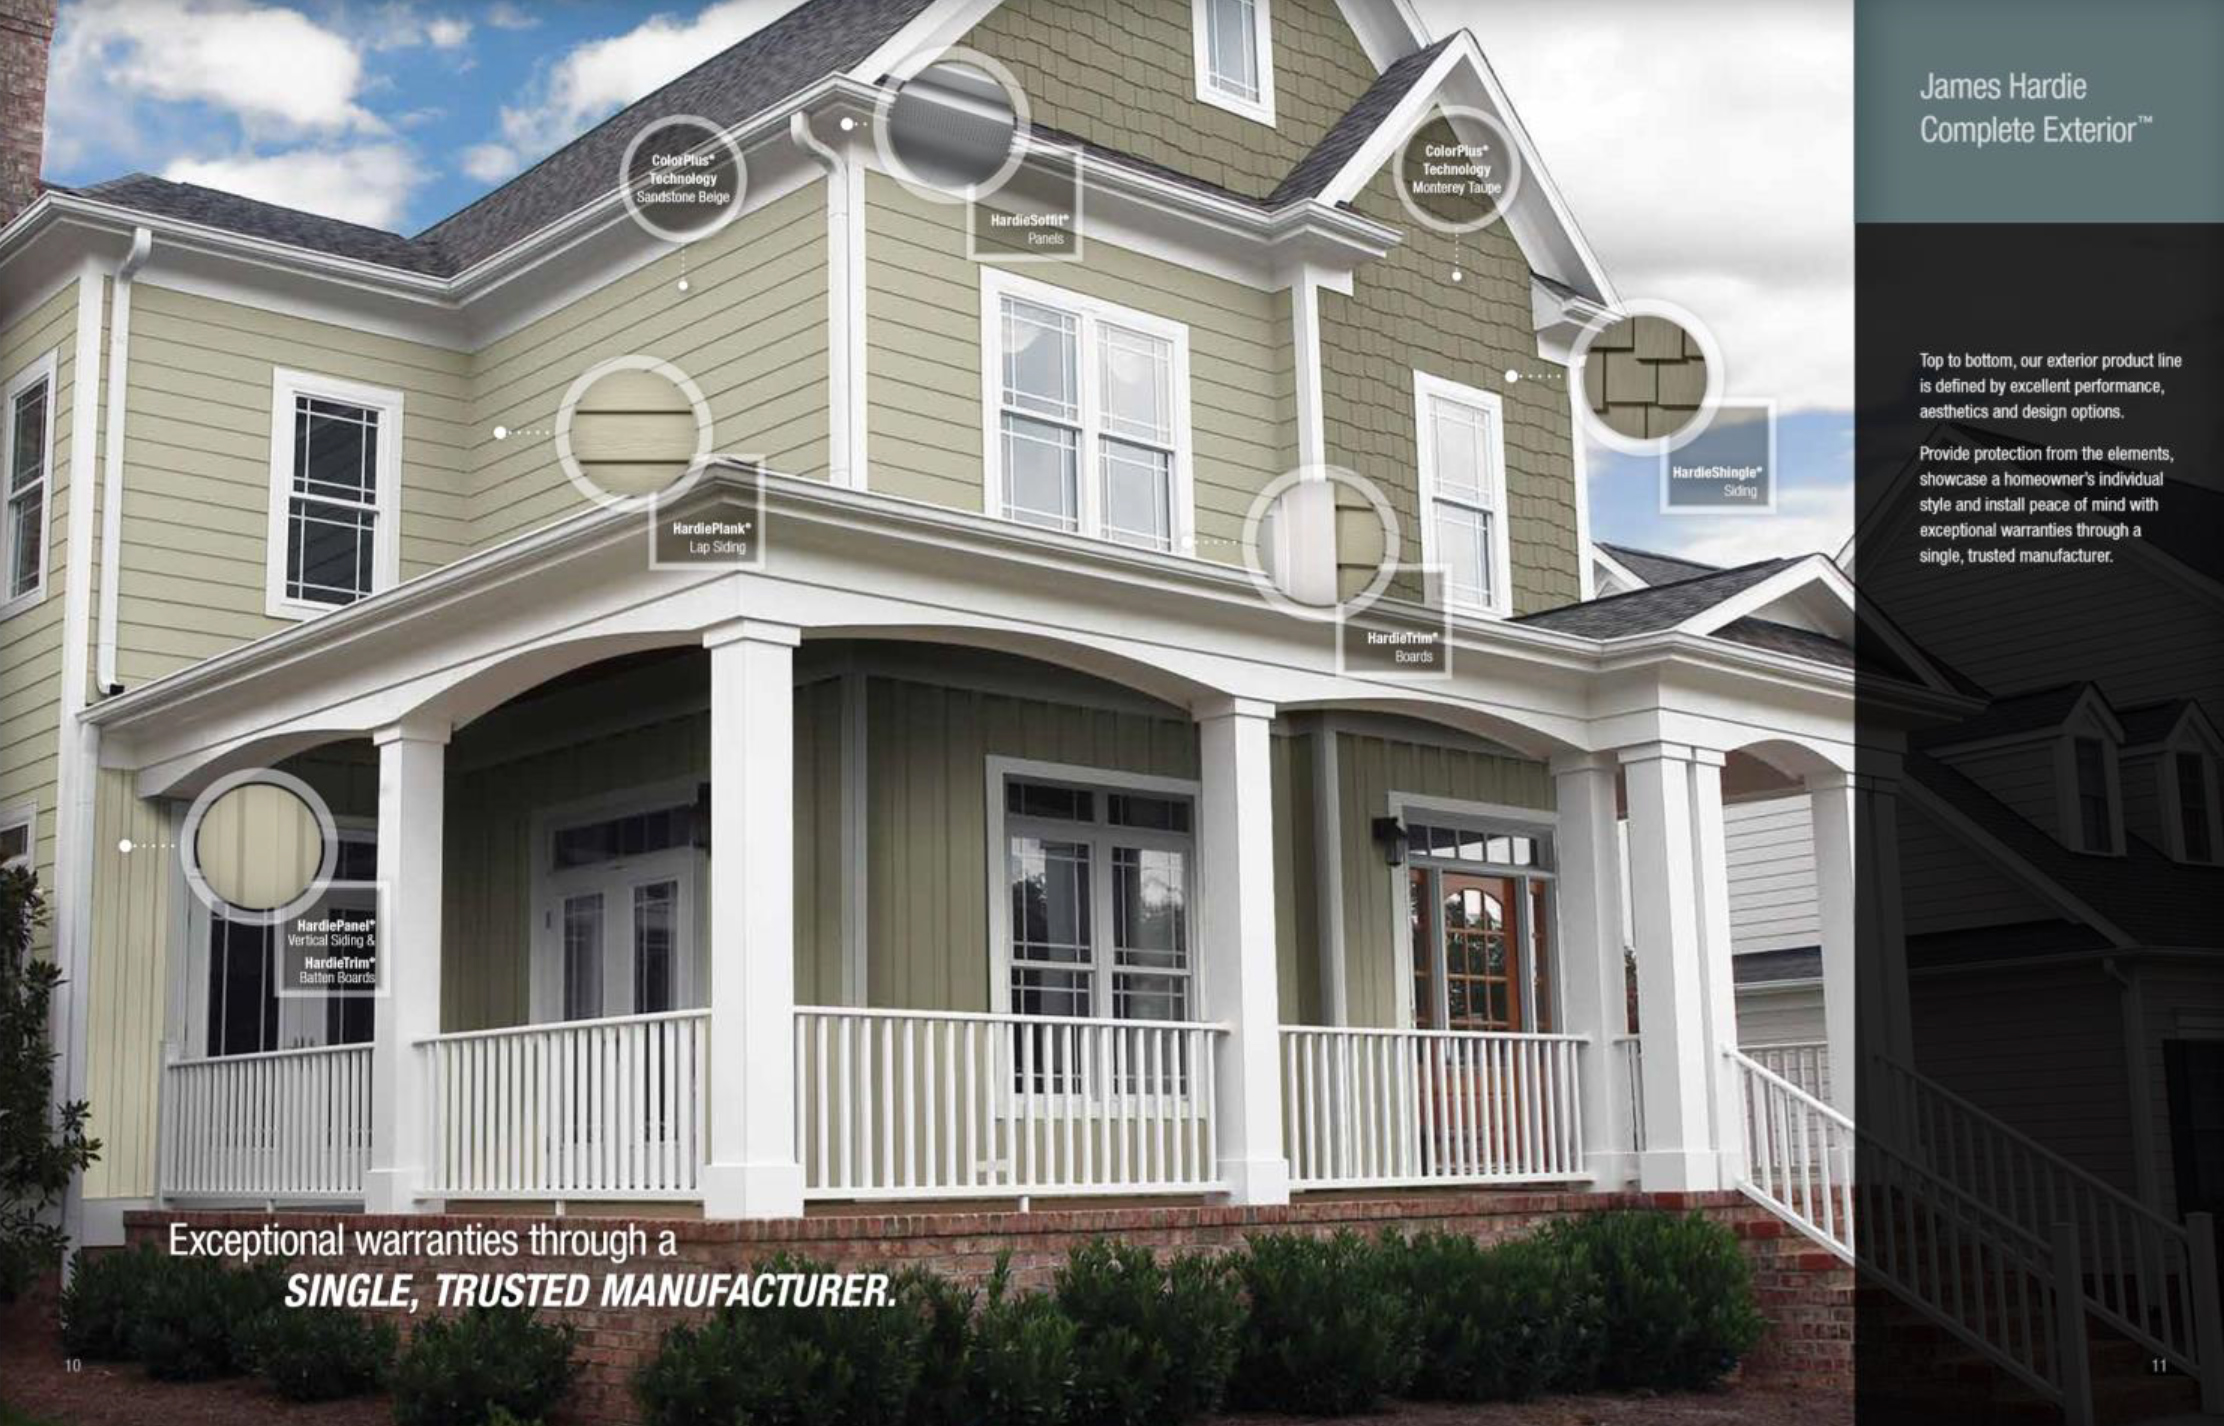 James Hardie Siding Stl Siding Pros